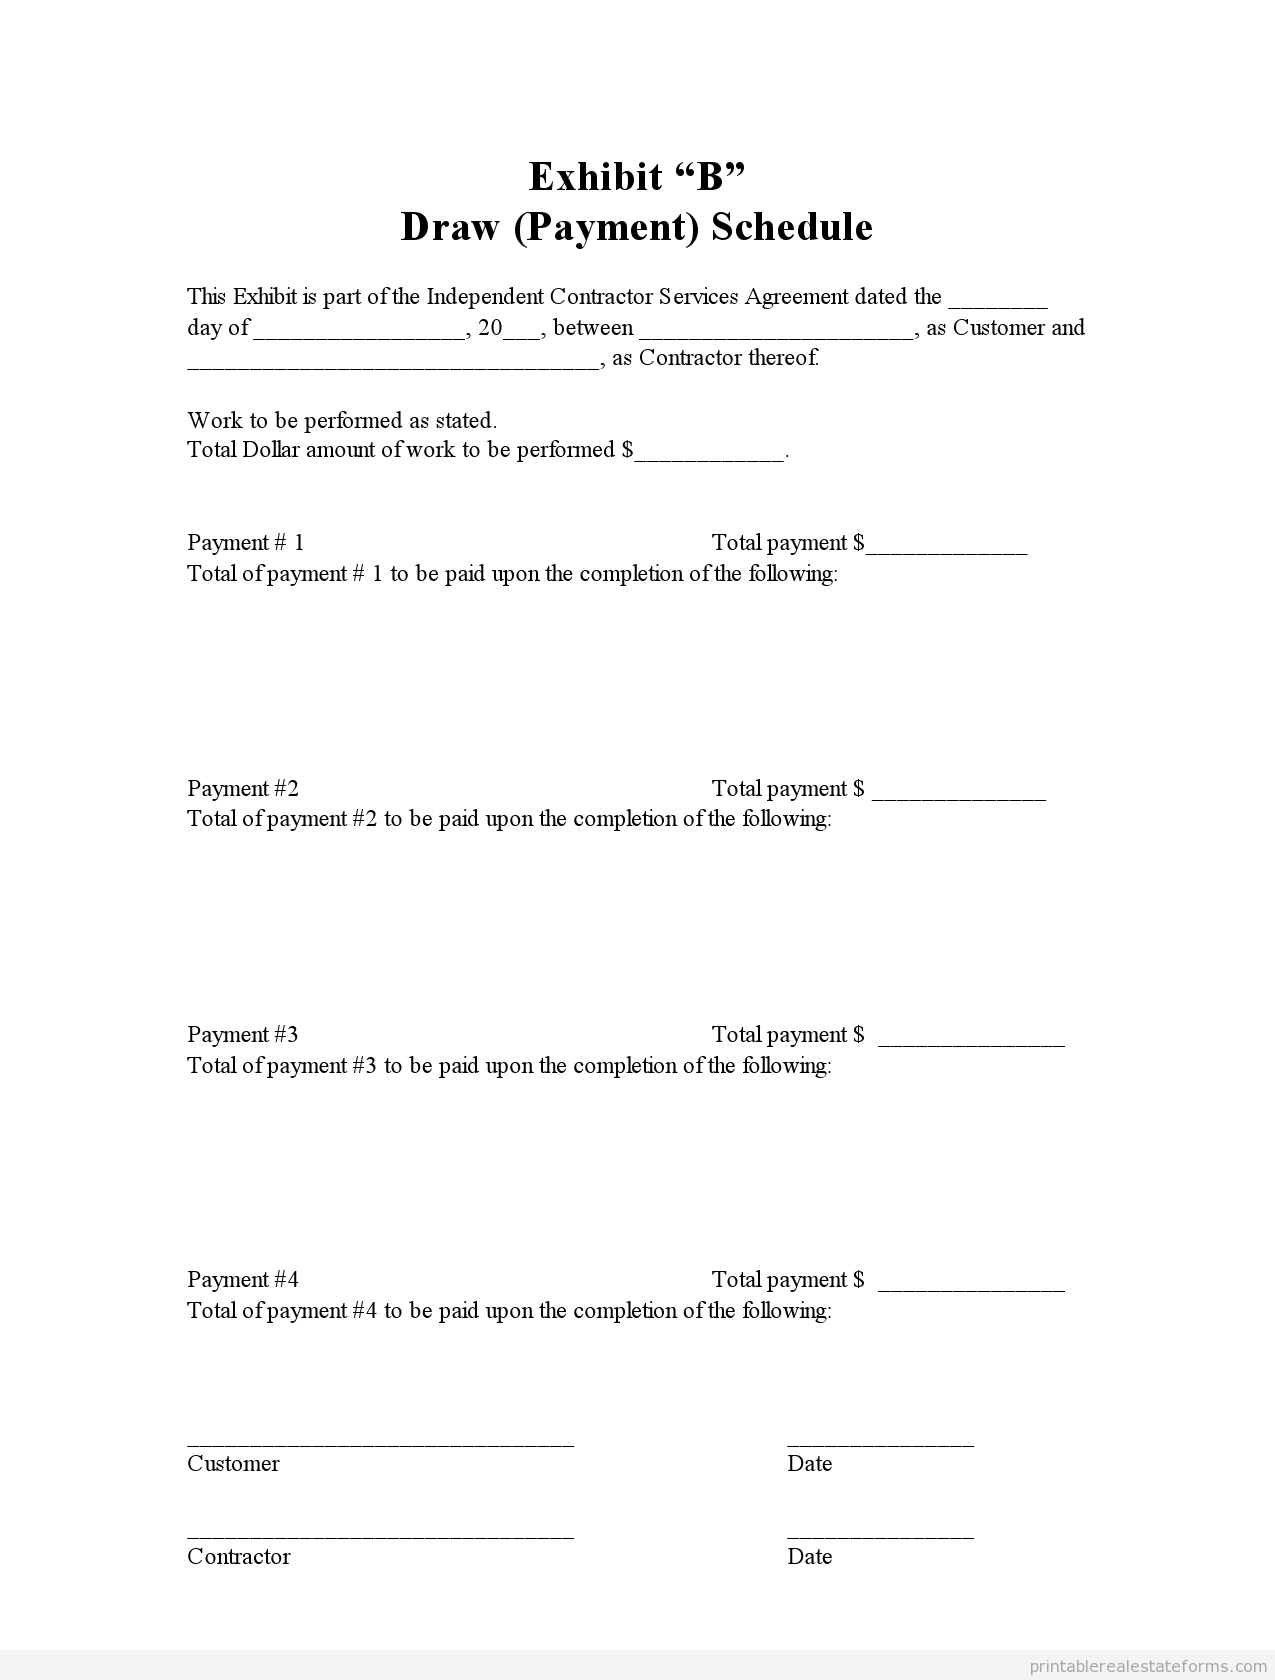 Sample Printable Draw Schedule Form  Printable Real Estate Forms